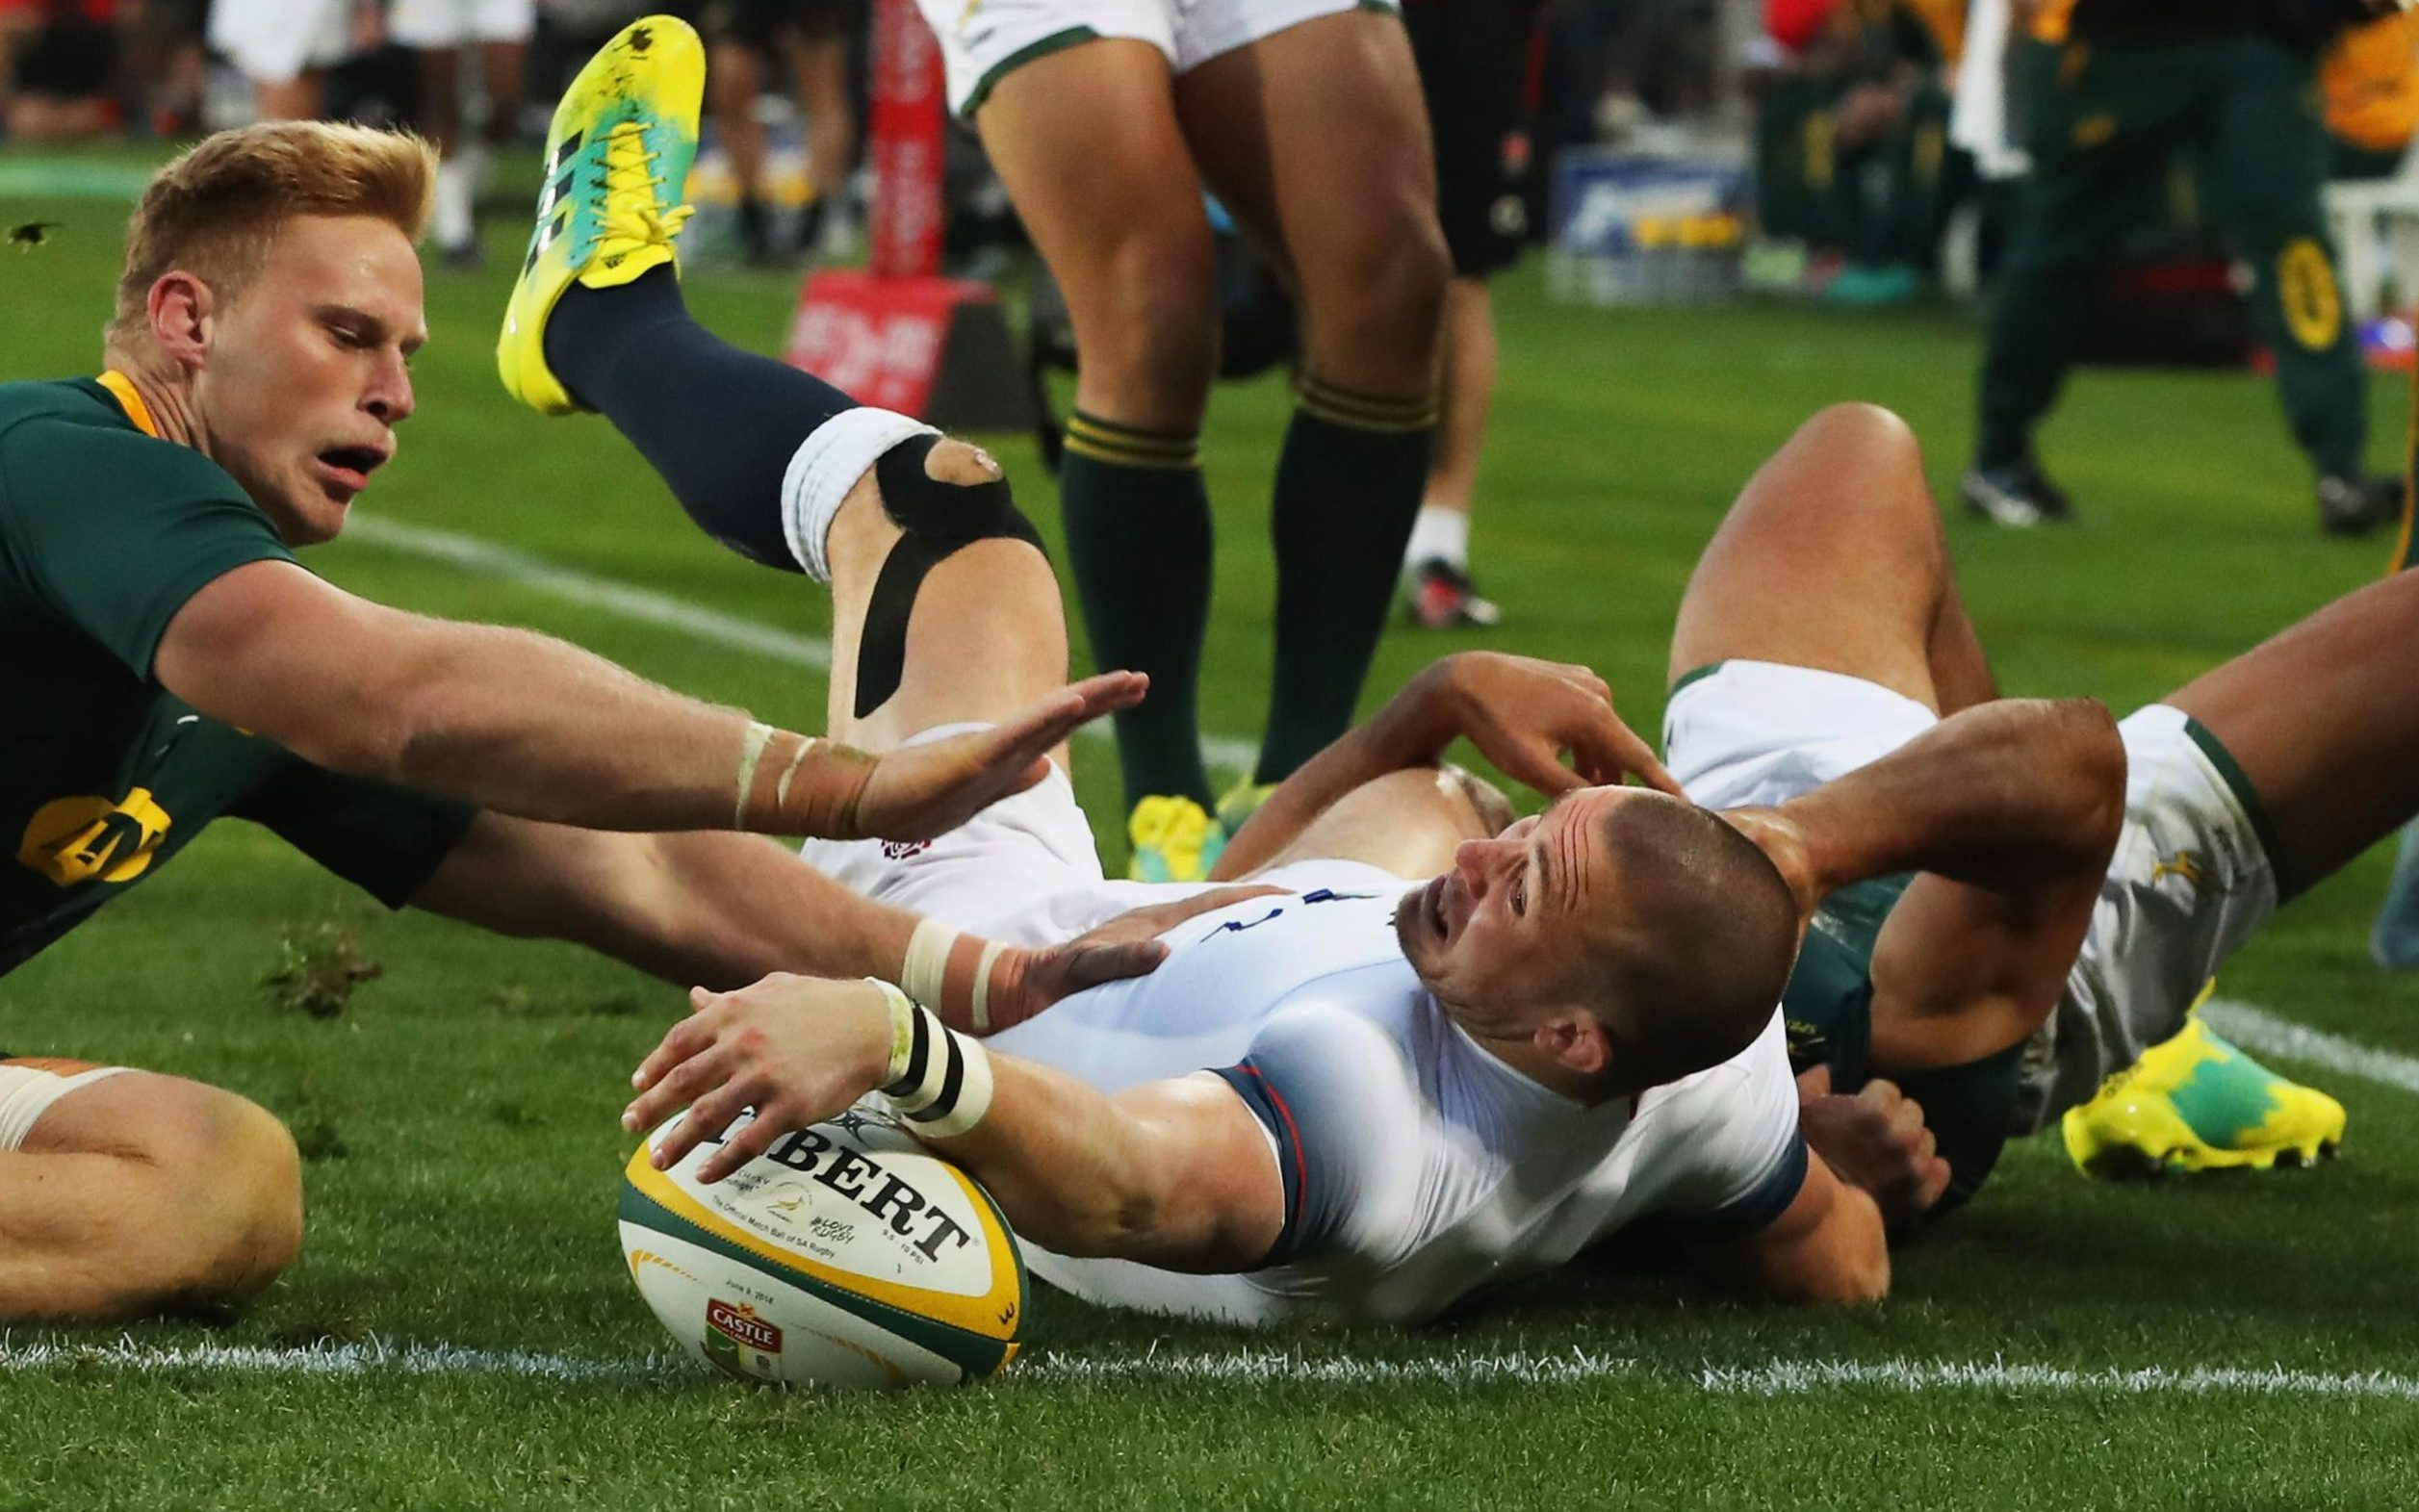 Mike Brown scored the opening try of the match for England against South Africa